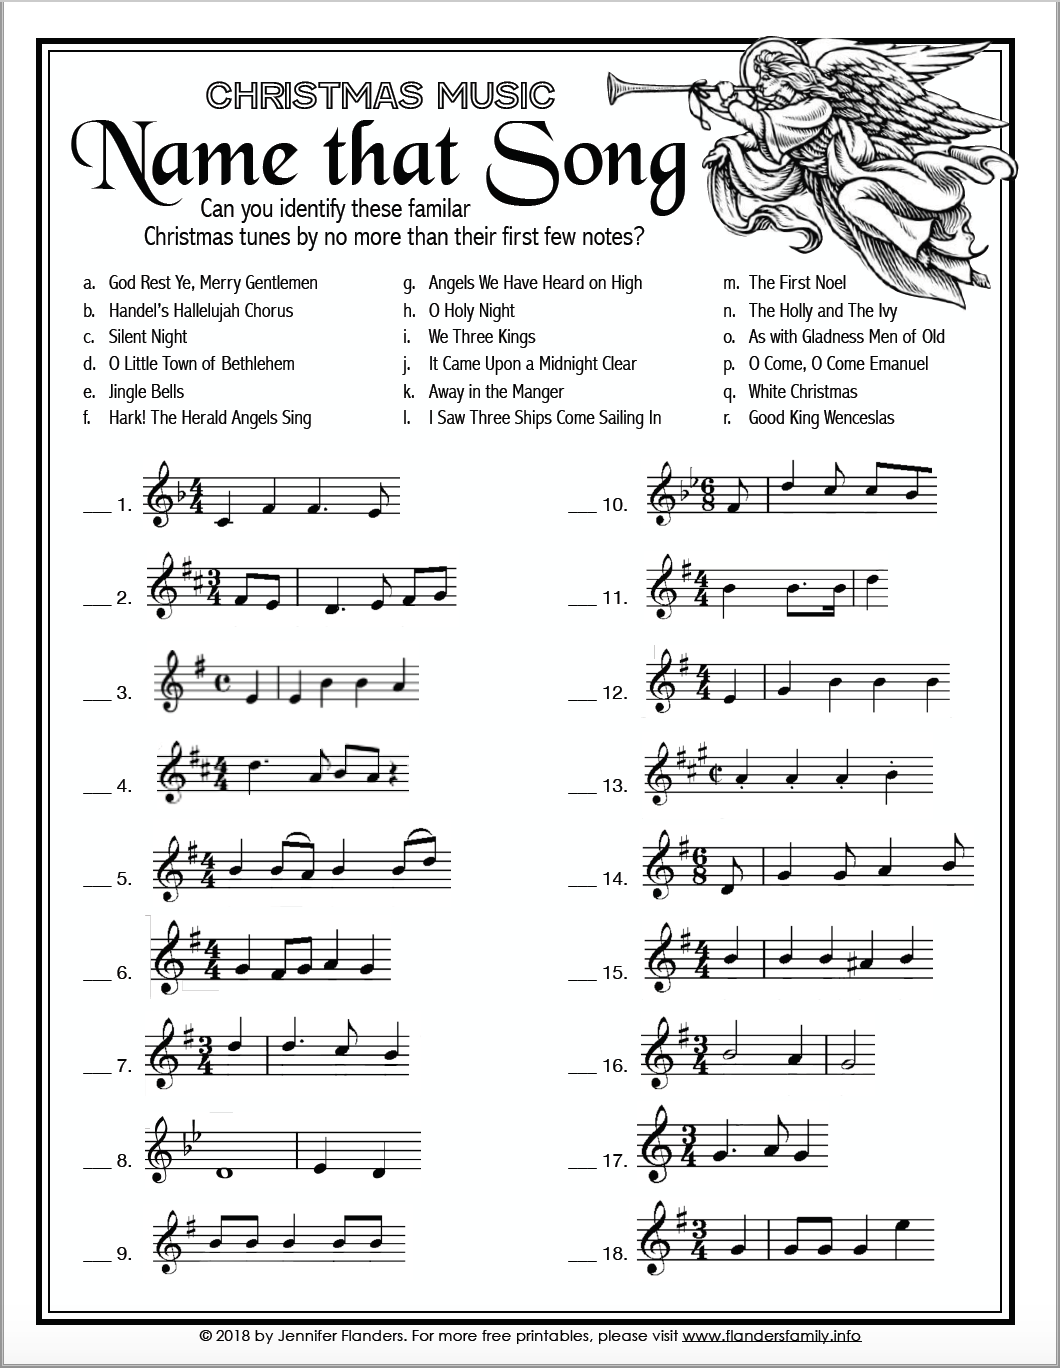 Name that Song - Fill in the Blank - Free Printable Christmas Game